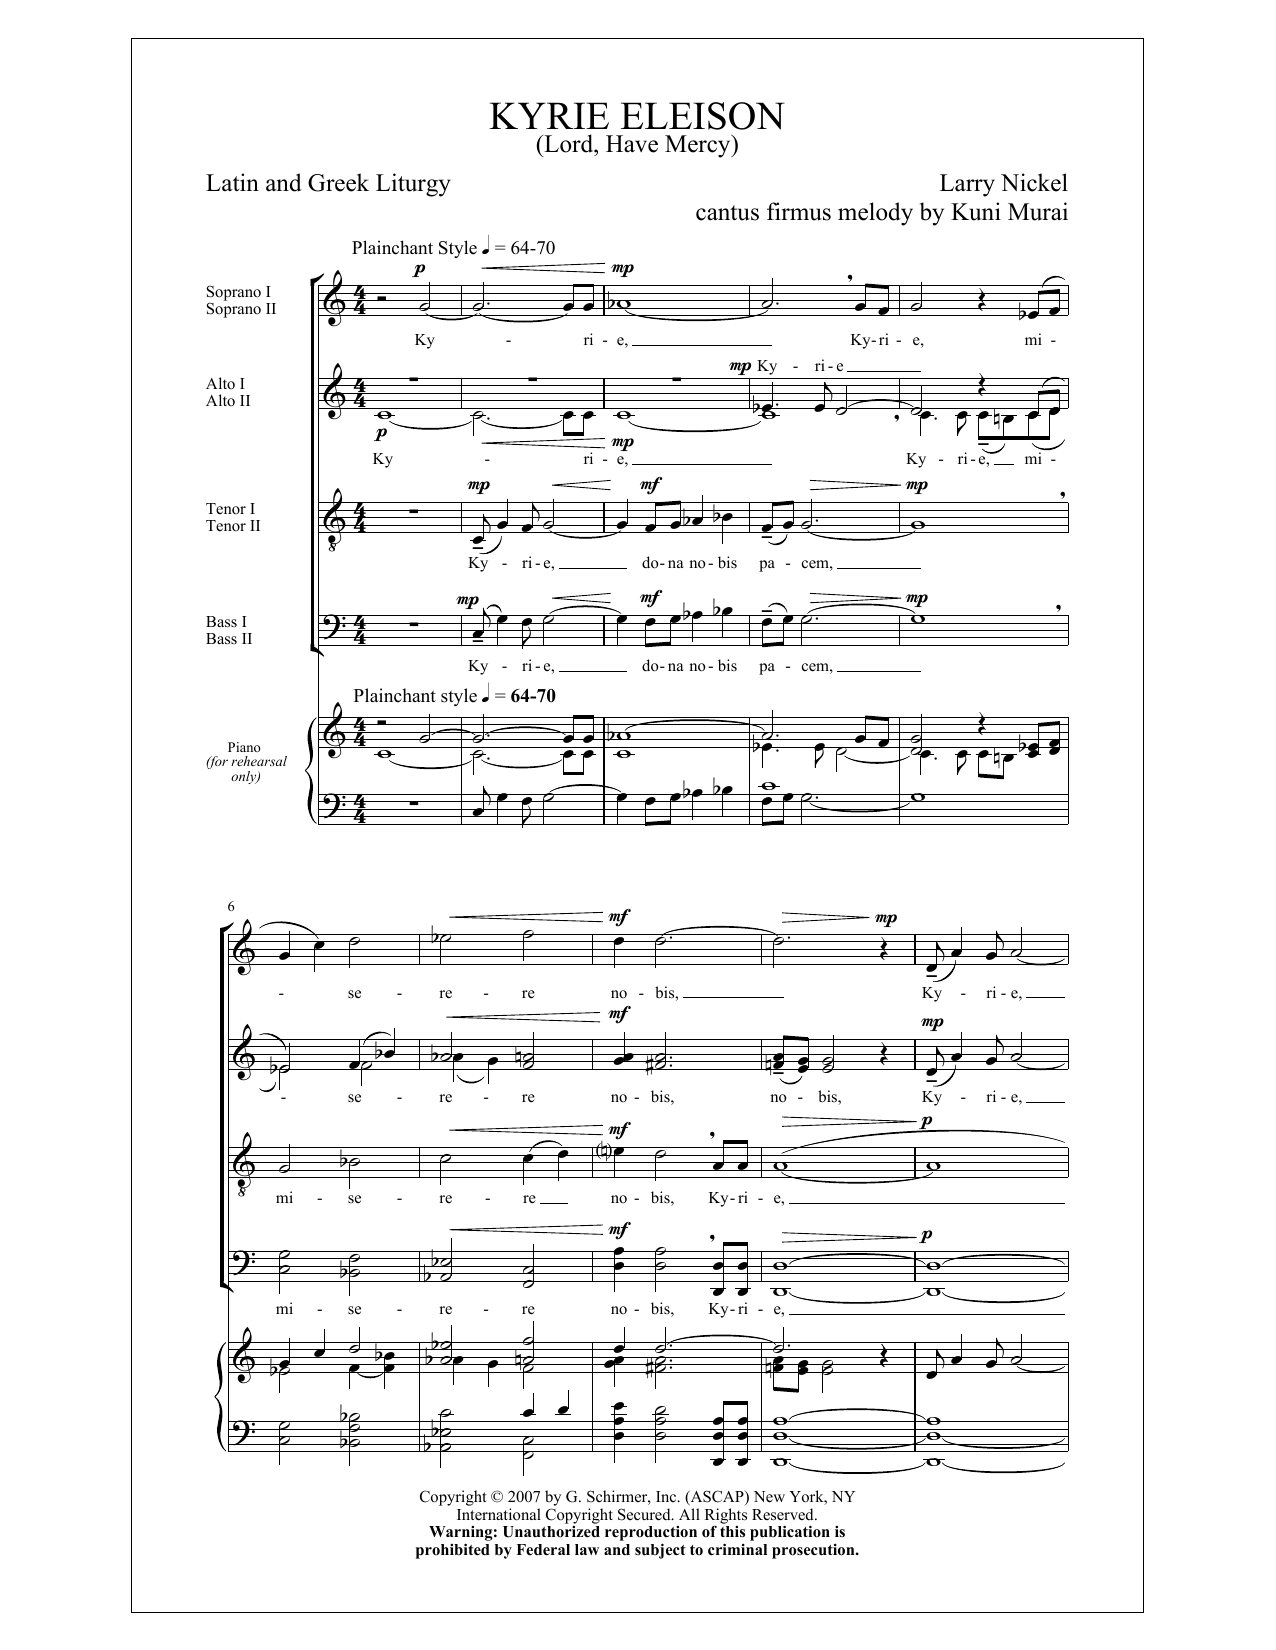 Kyrie Eleison (Lord, Have Mercy) Sheet Music